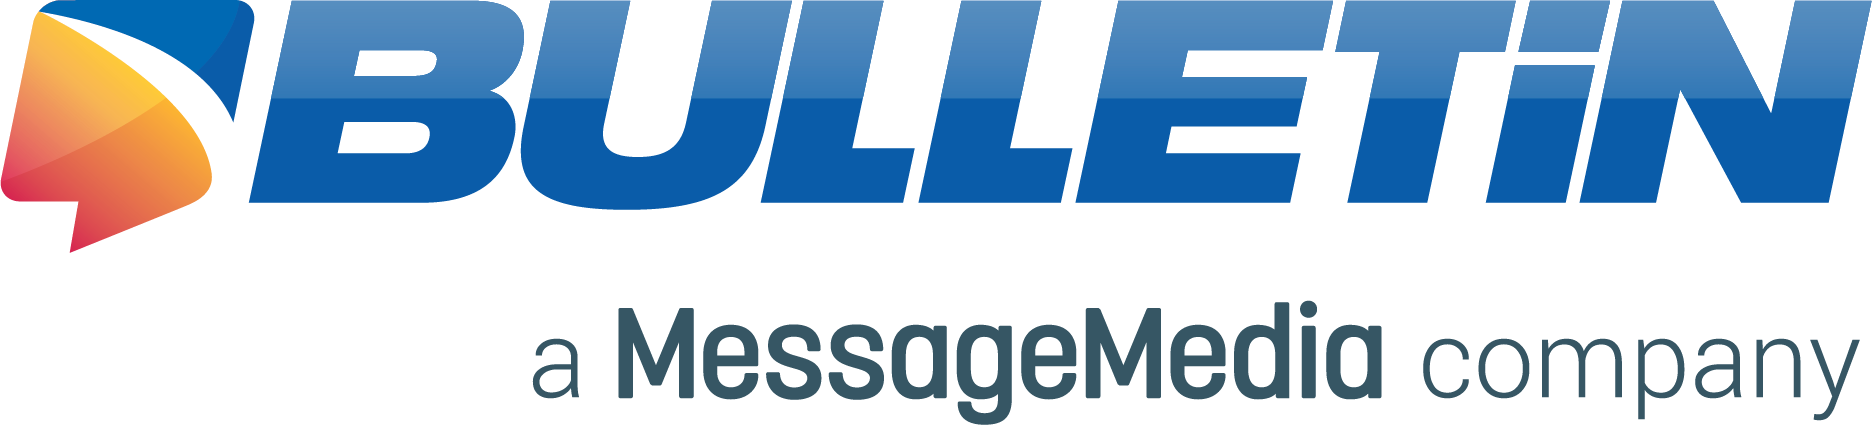 Bulletin - Part of the MessageMedia Group